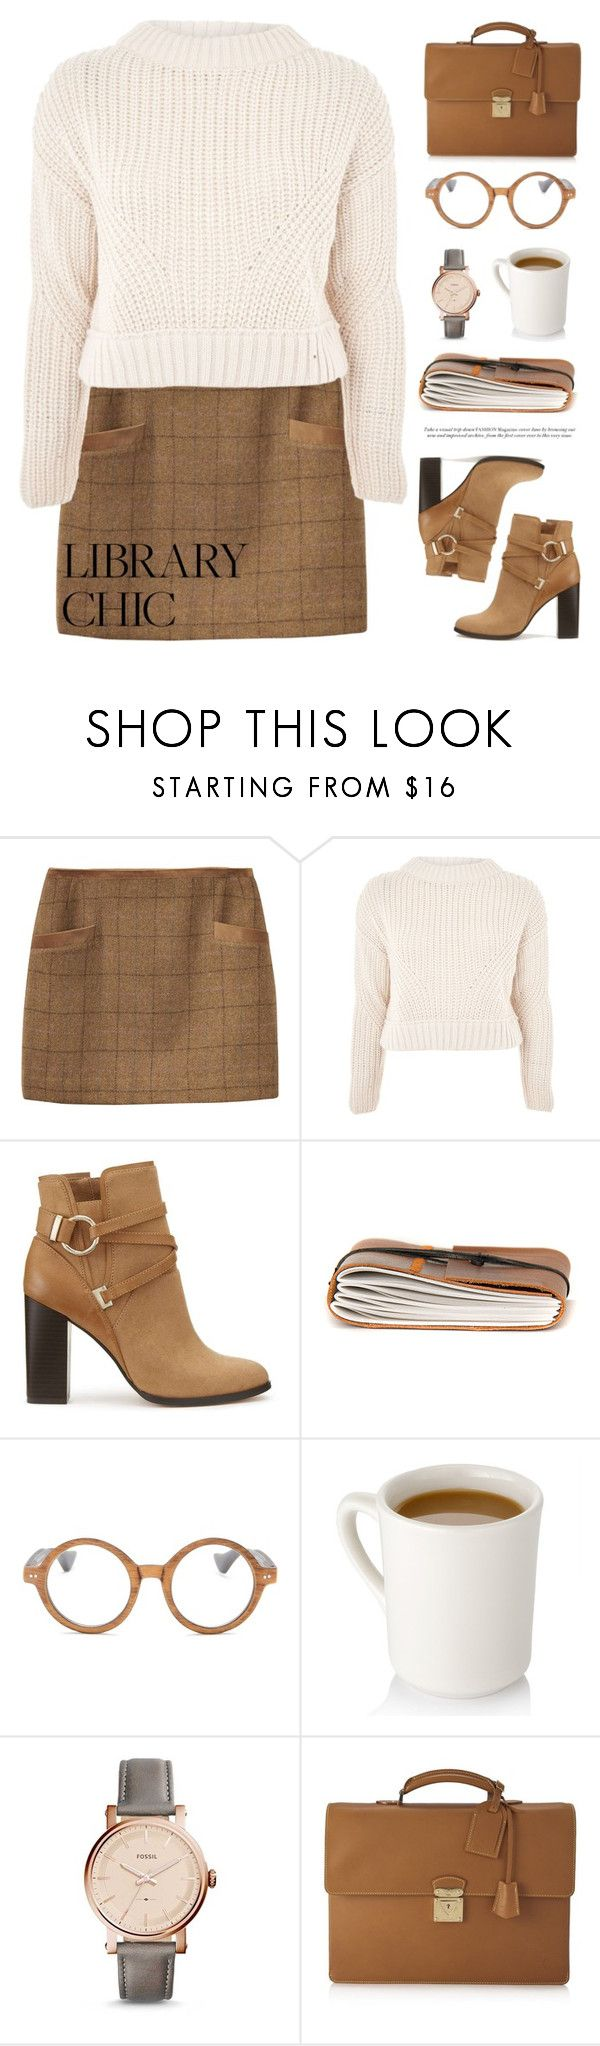 """Work Hard, Play Hard: Finals Season"" by lysianna on Polyvore featuring Joules, Topshop, Miss Selfridge, Ellen Tracy, FOSSIL, Louis Vuitton and finals"